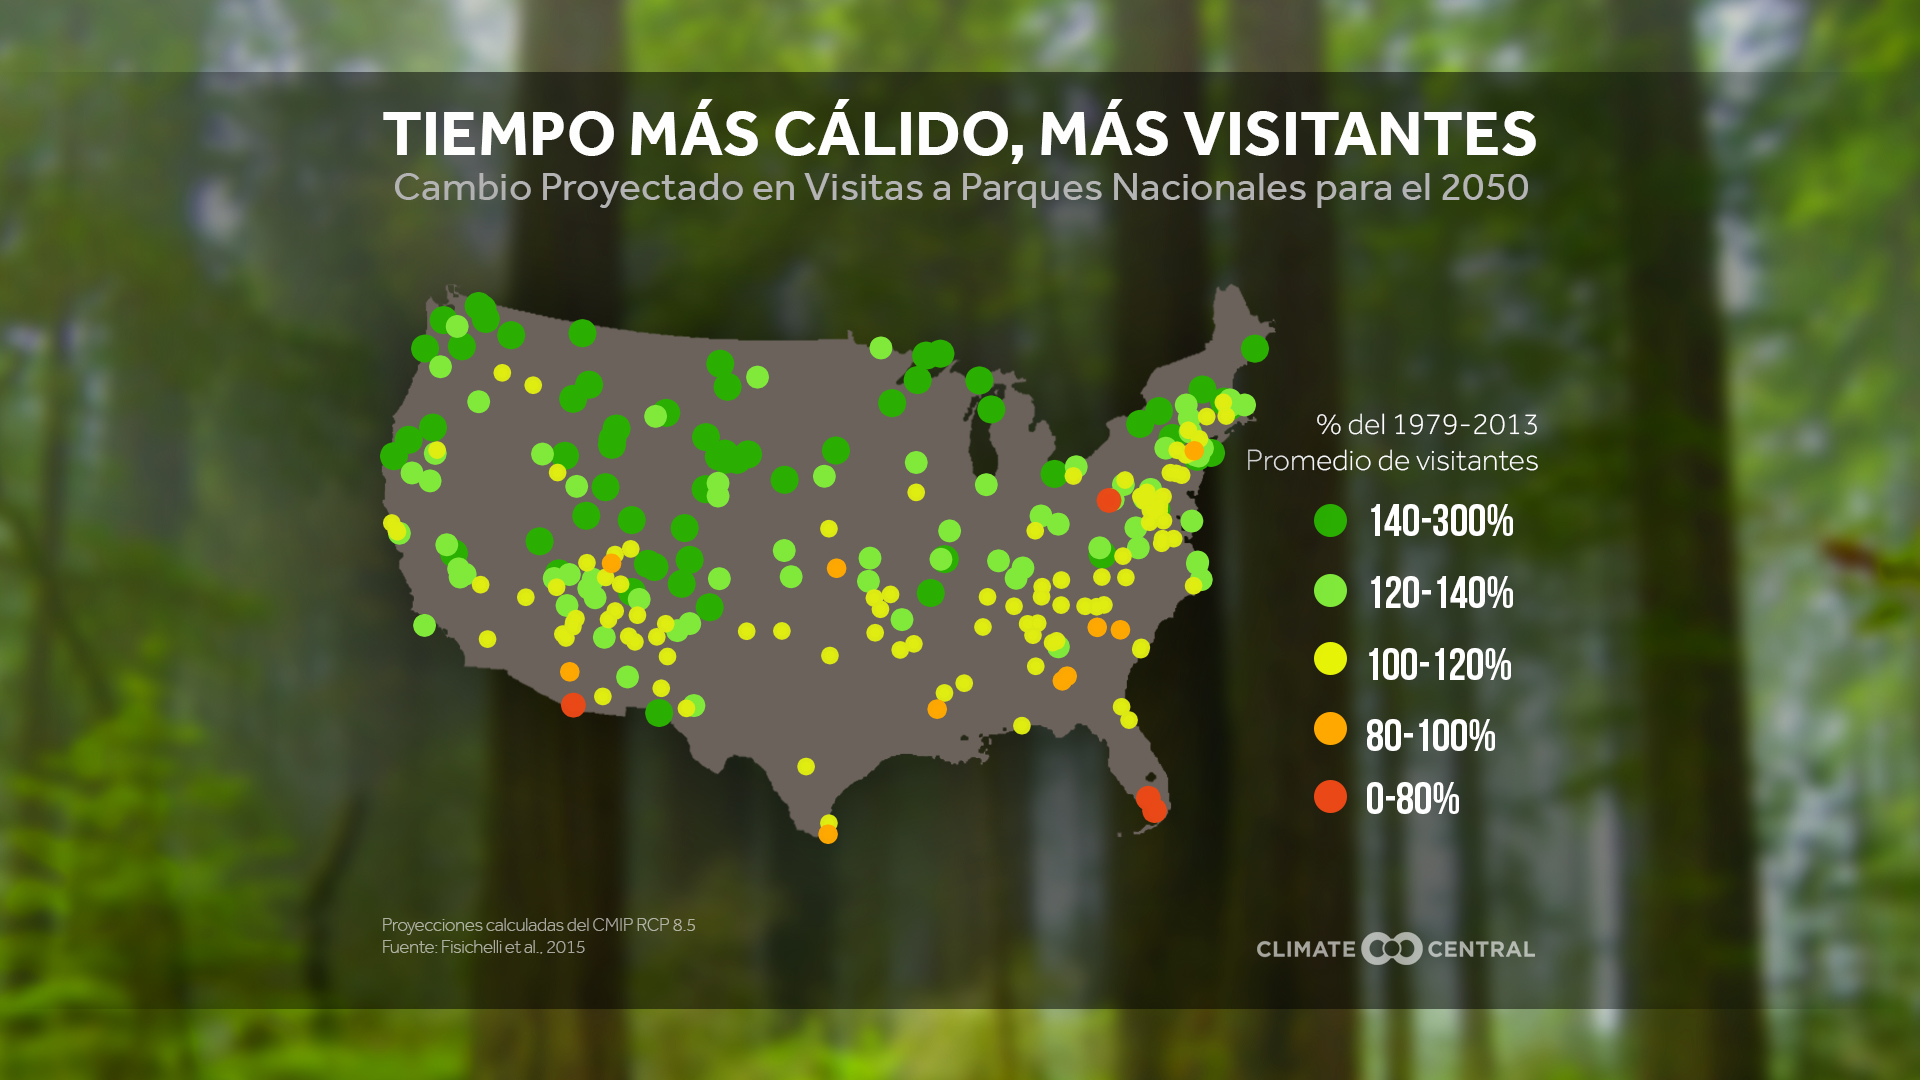 2016 map showing predicted increase in visitation